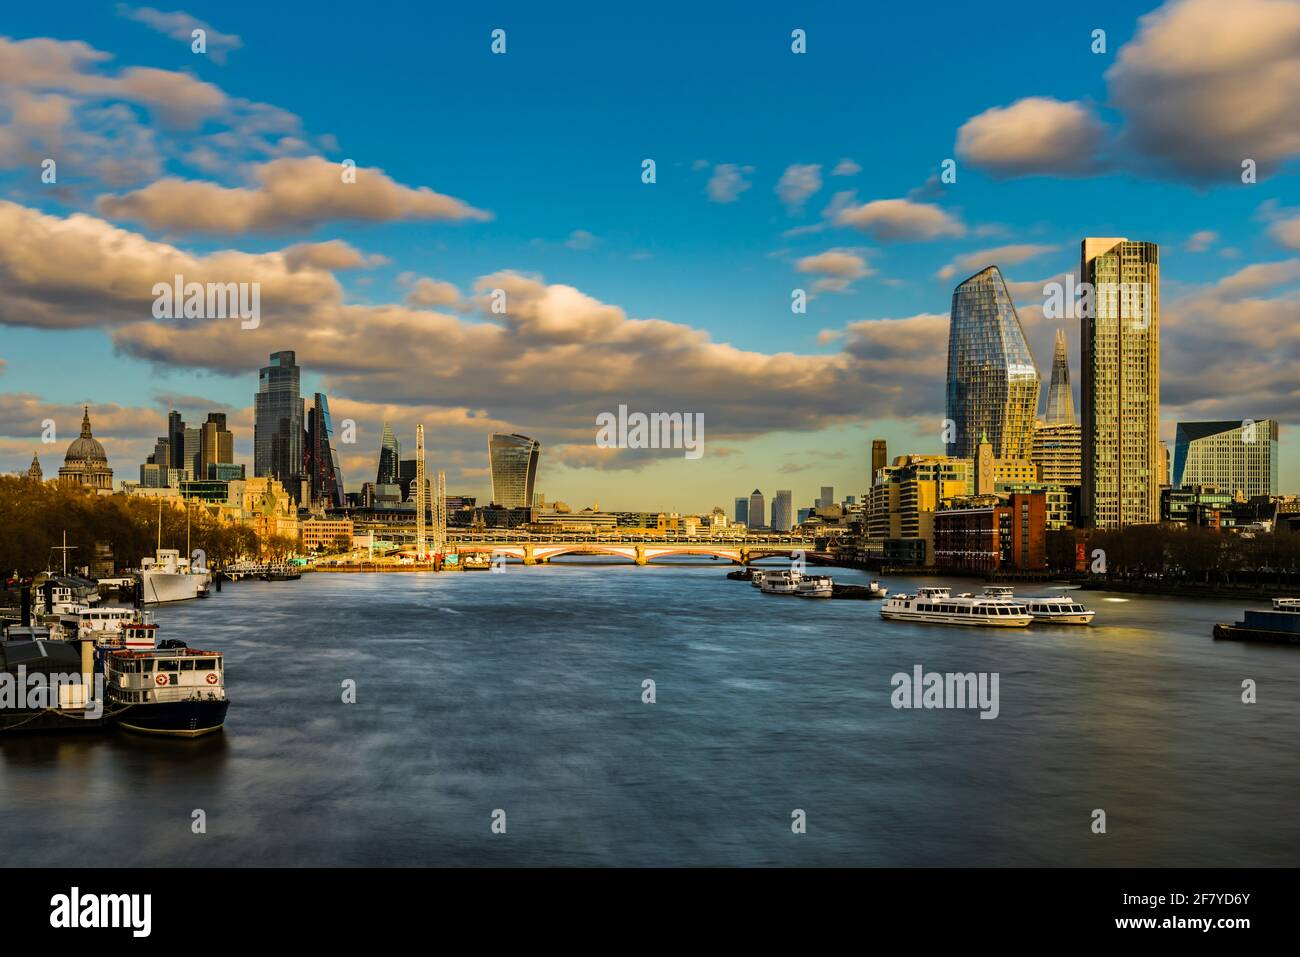 Late afternoon view over the City of London and of Blackfriars Bridge, London, UK Stock Photo